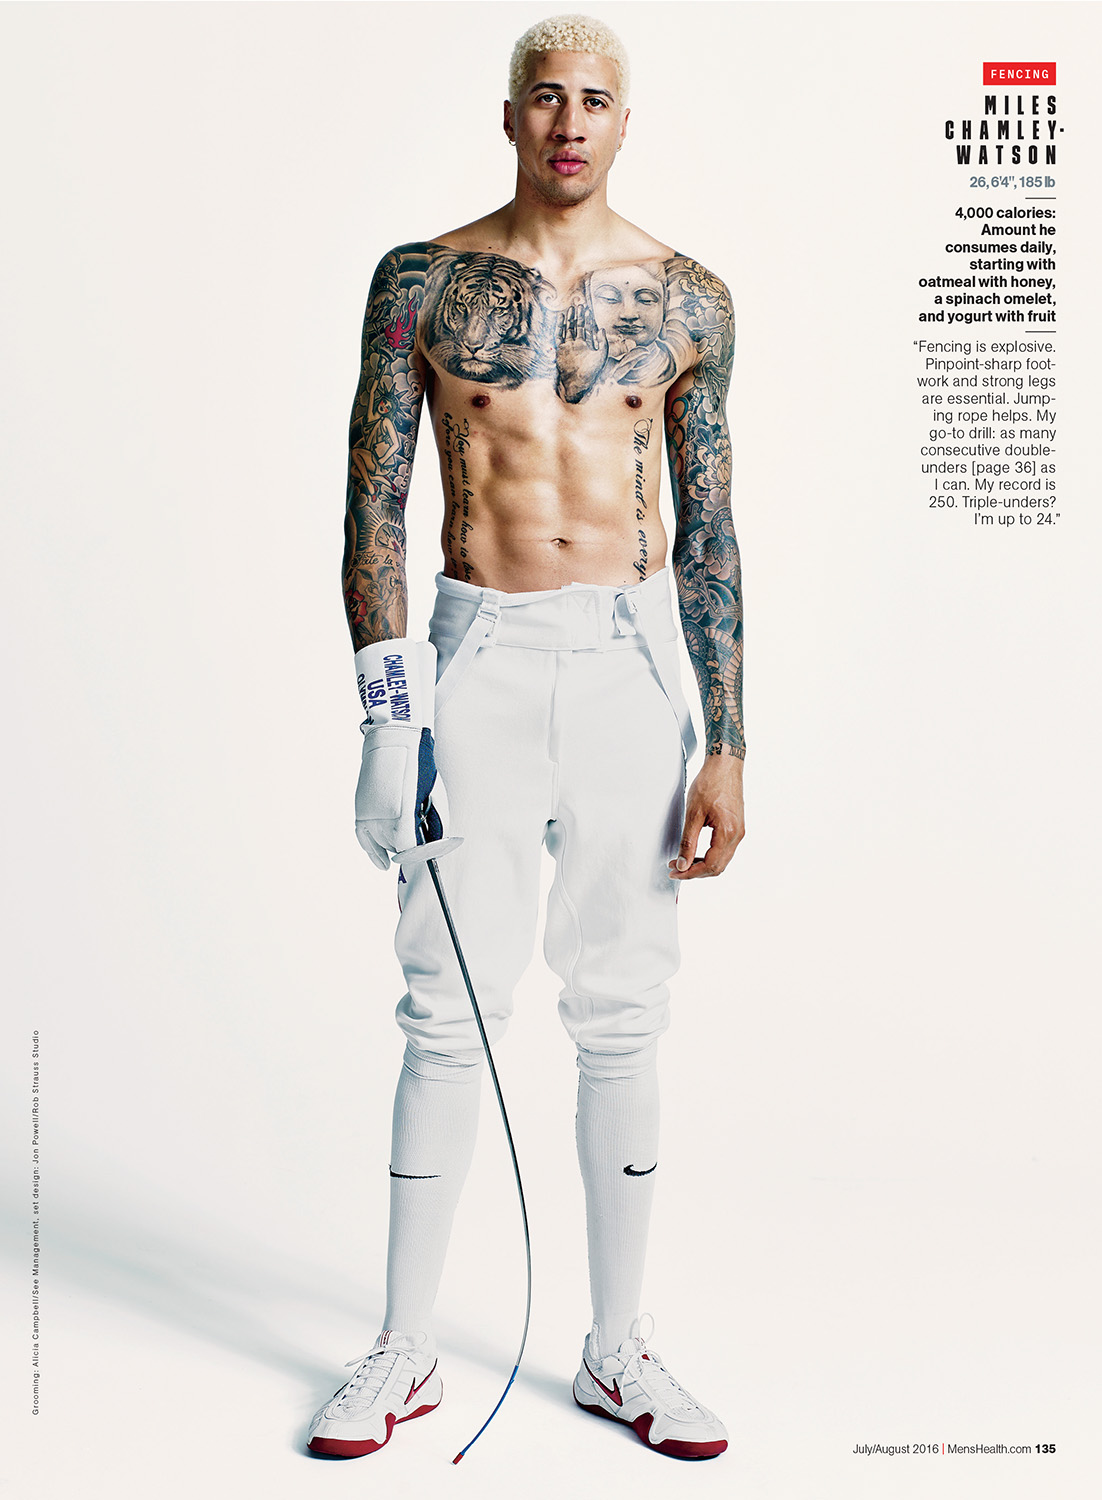 ac_MensHealth_PeterHapak_JulAug16_Layout_07.jpg